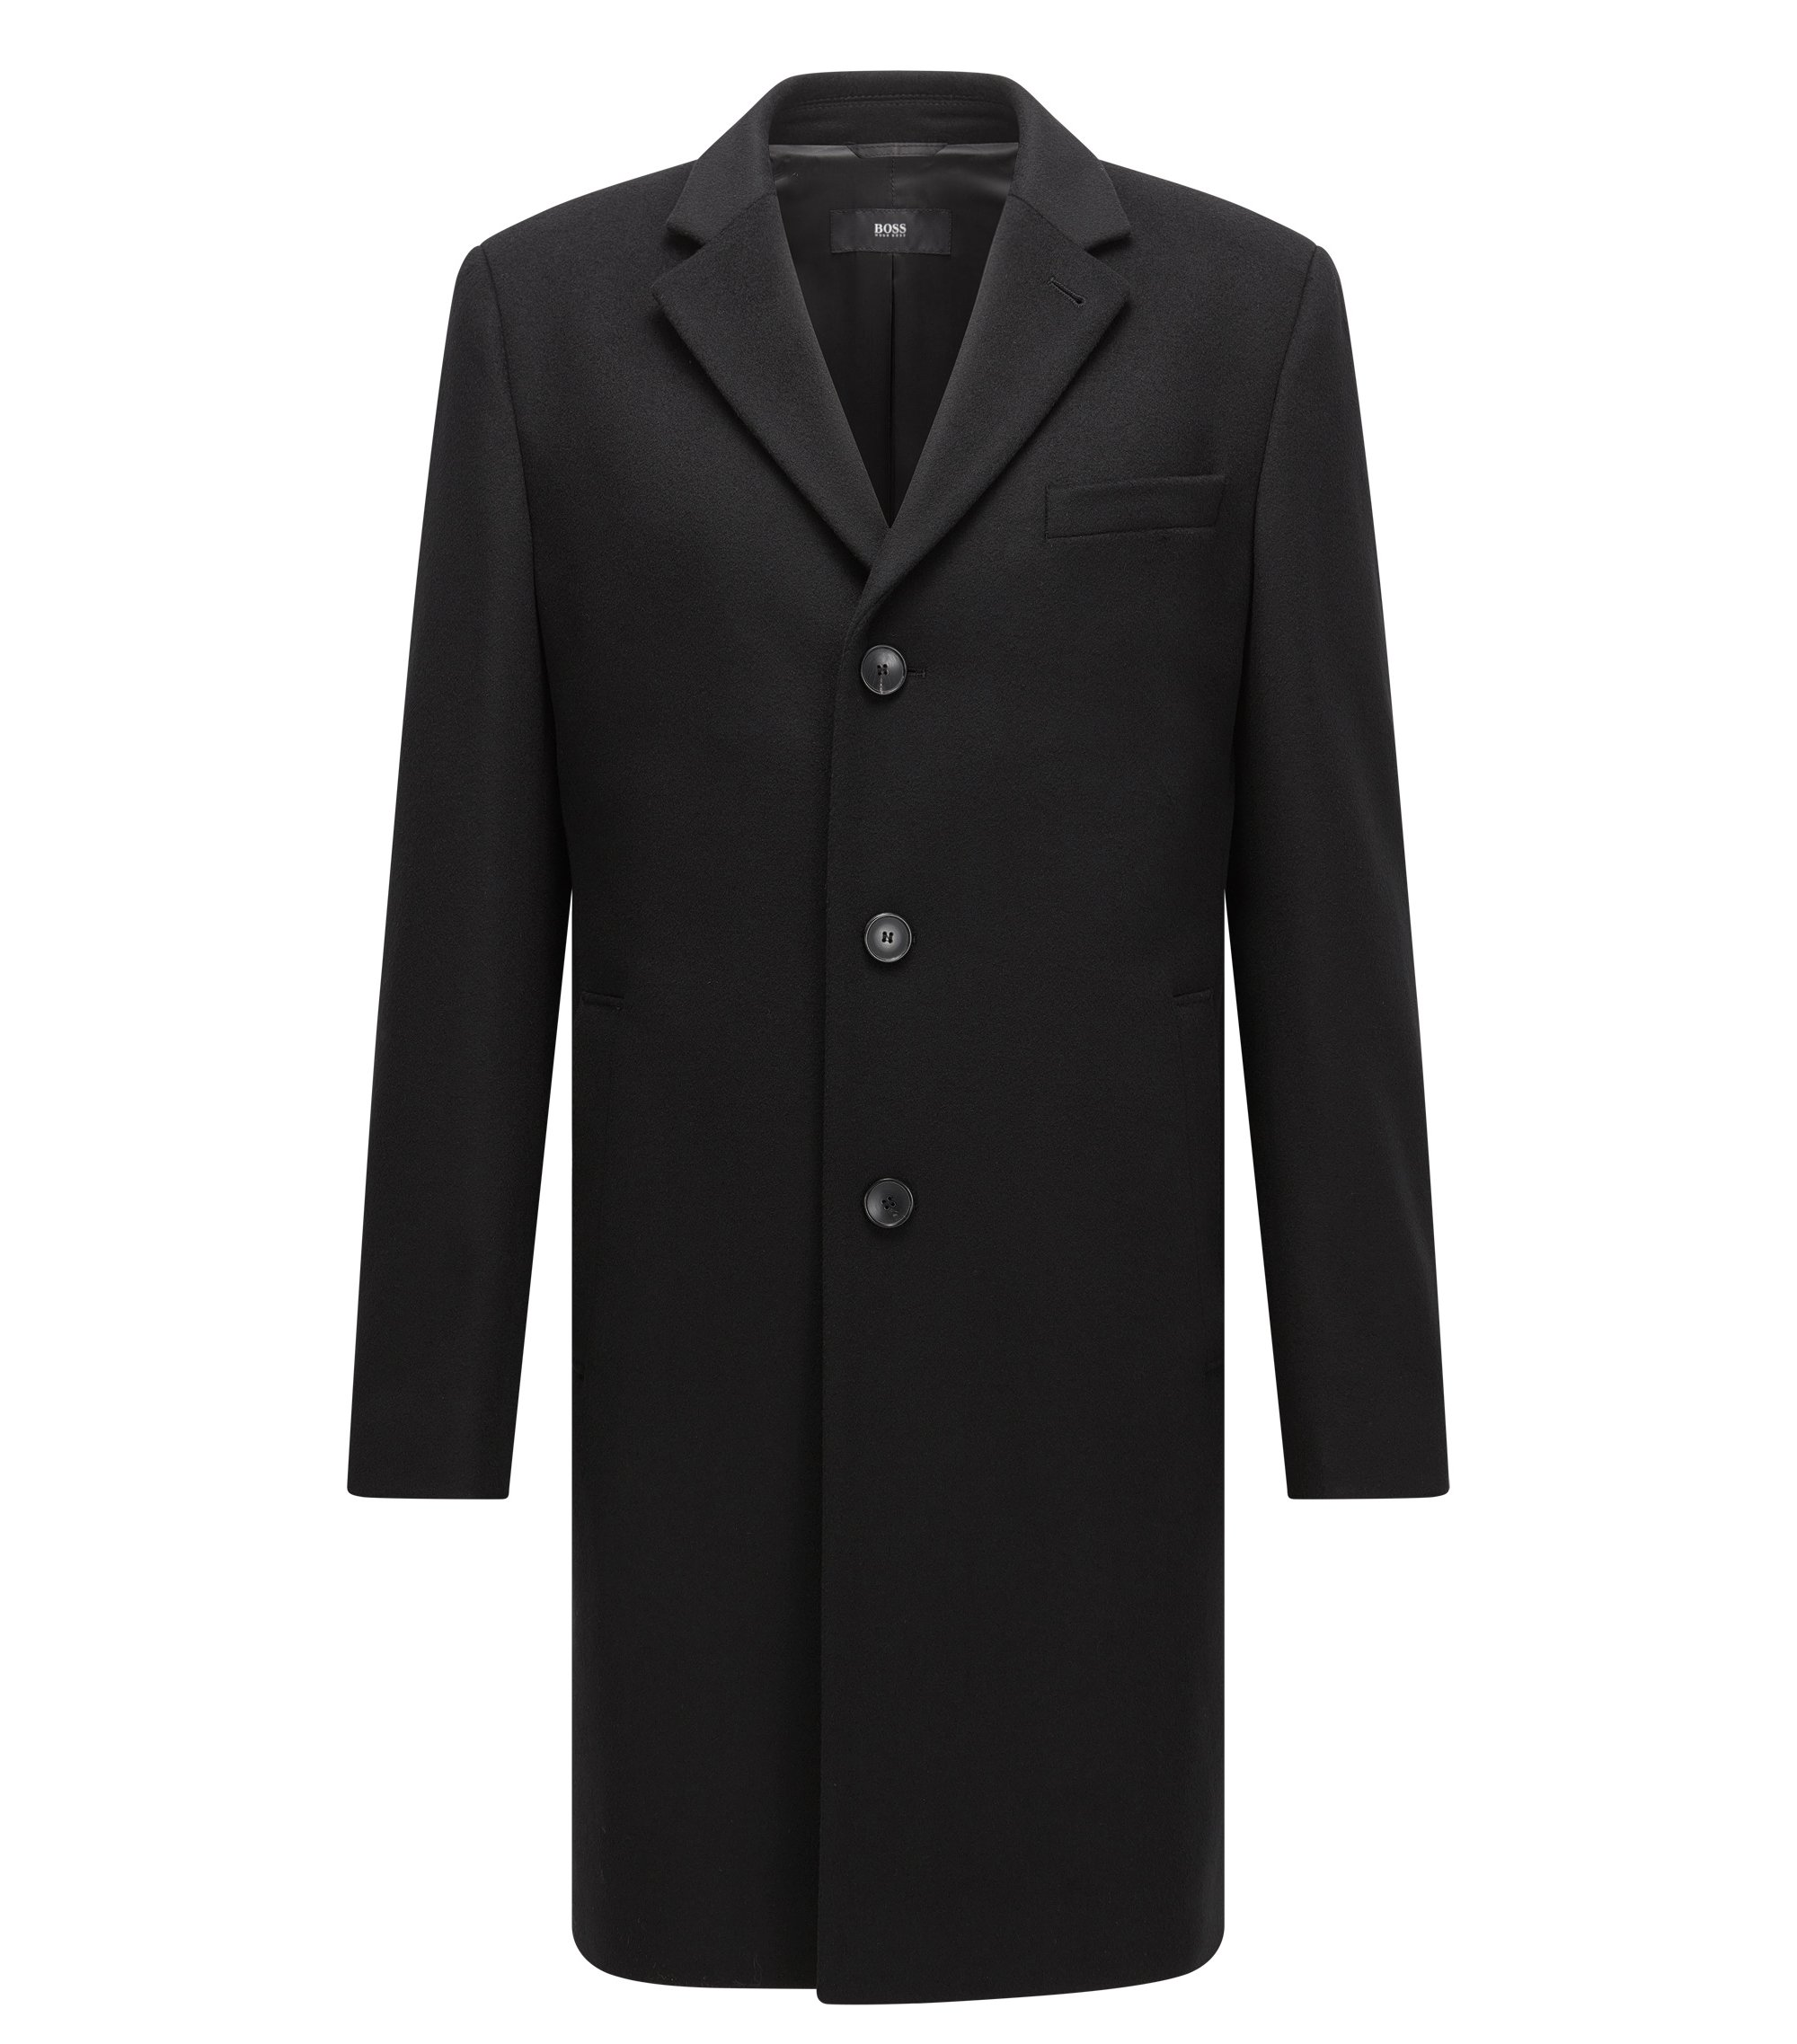 Wool Cashmere Top Coat | Nye, Black